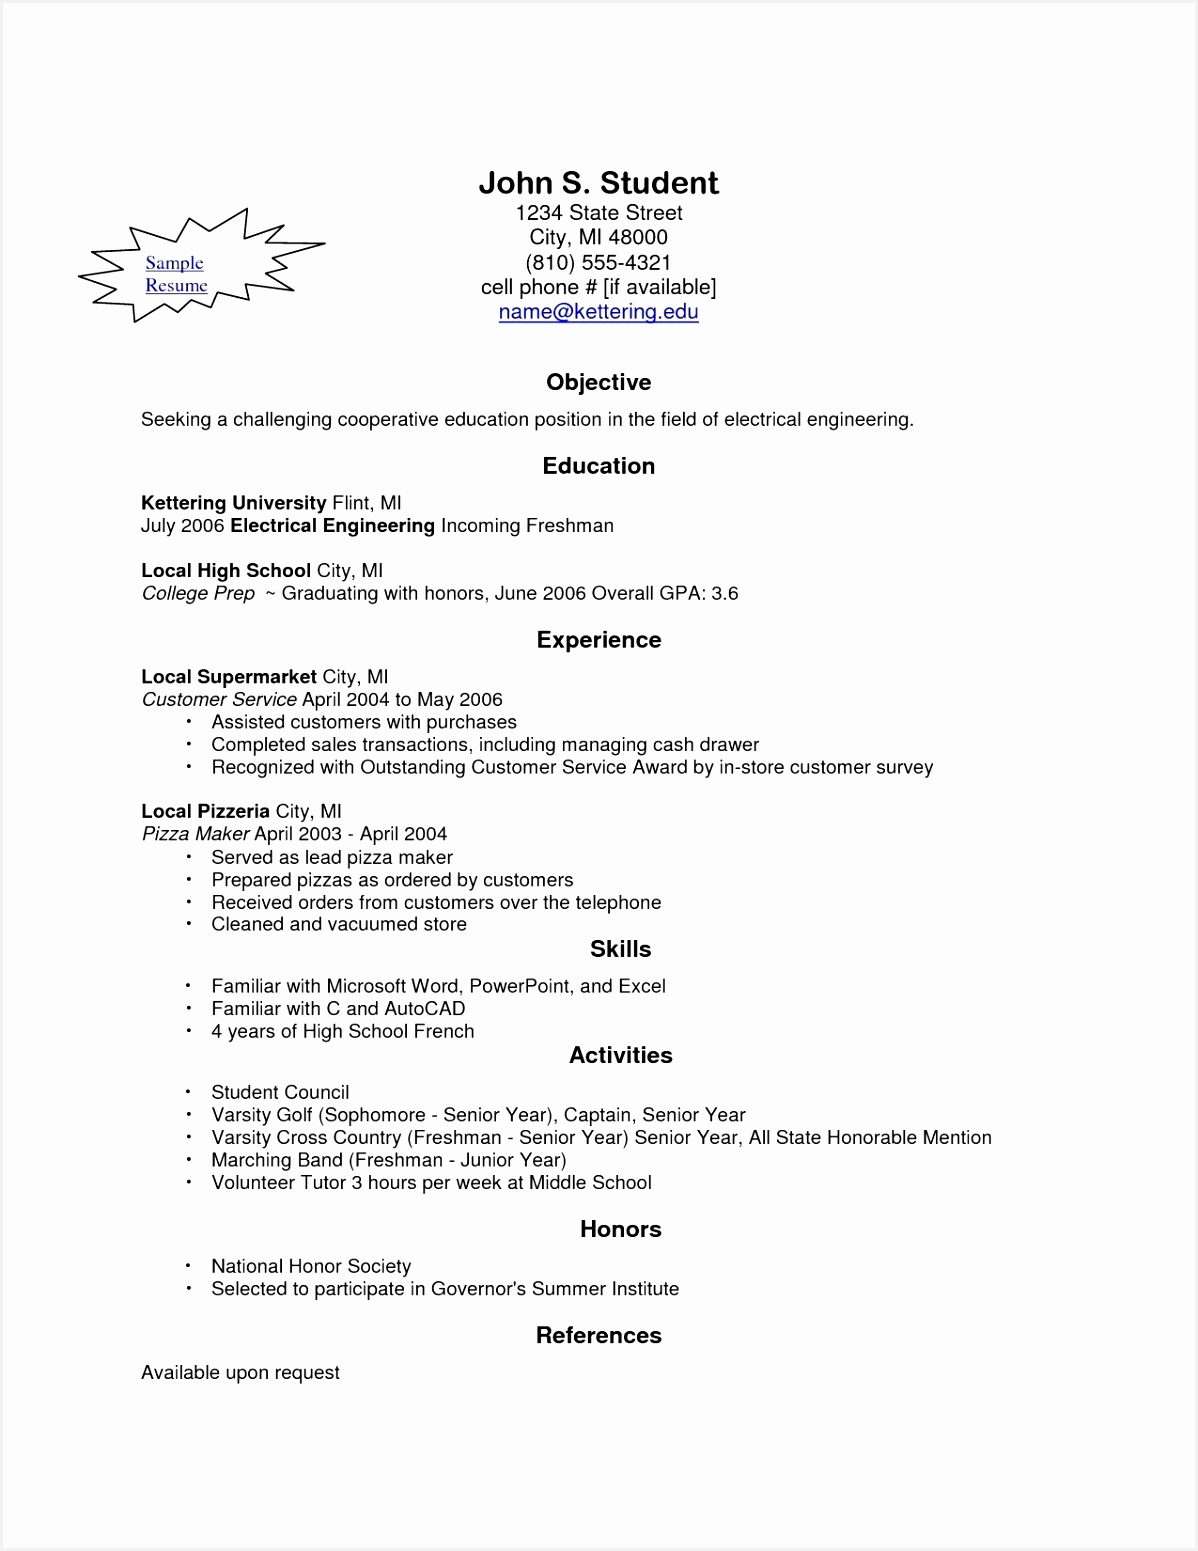 Engineering Student Sample Resume Zbewm New Resume Builder for Students Sample Resume Maker Line Awesome Best 0d15511198